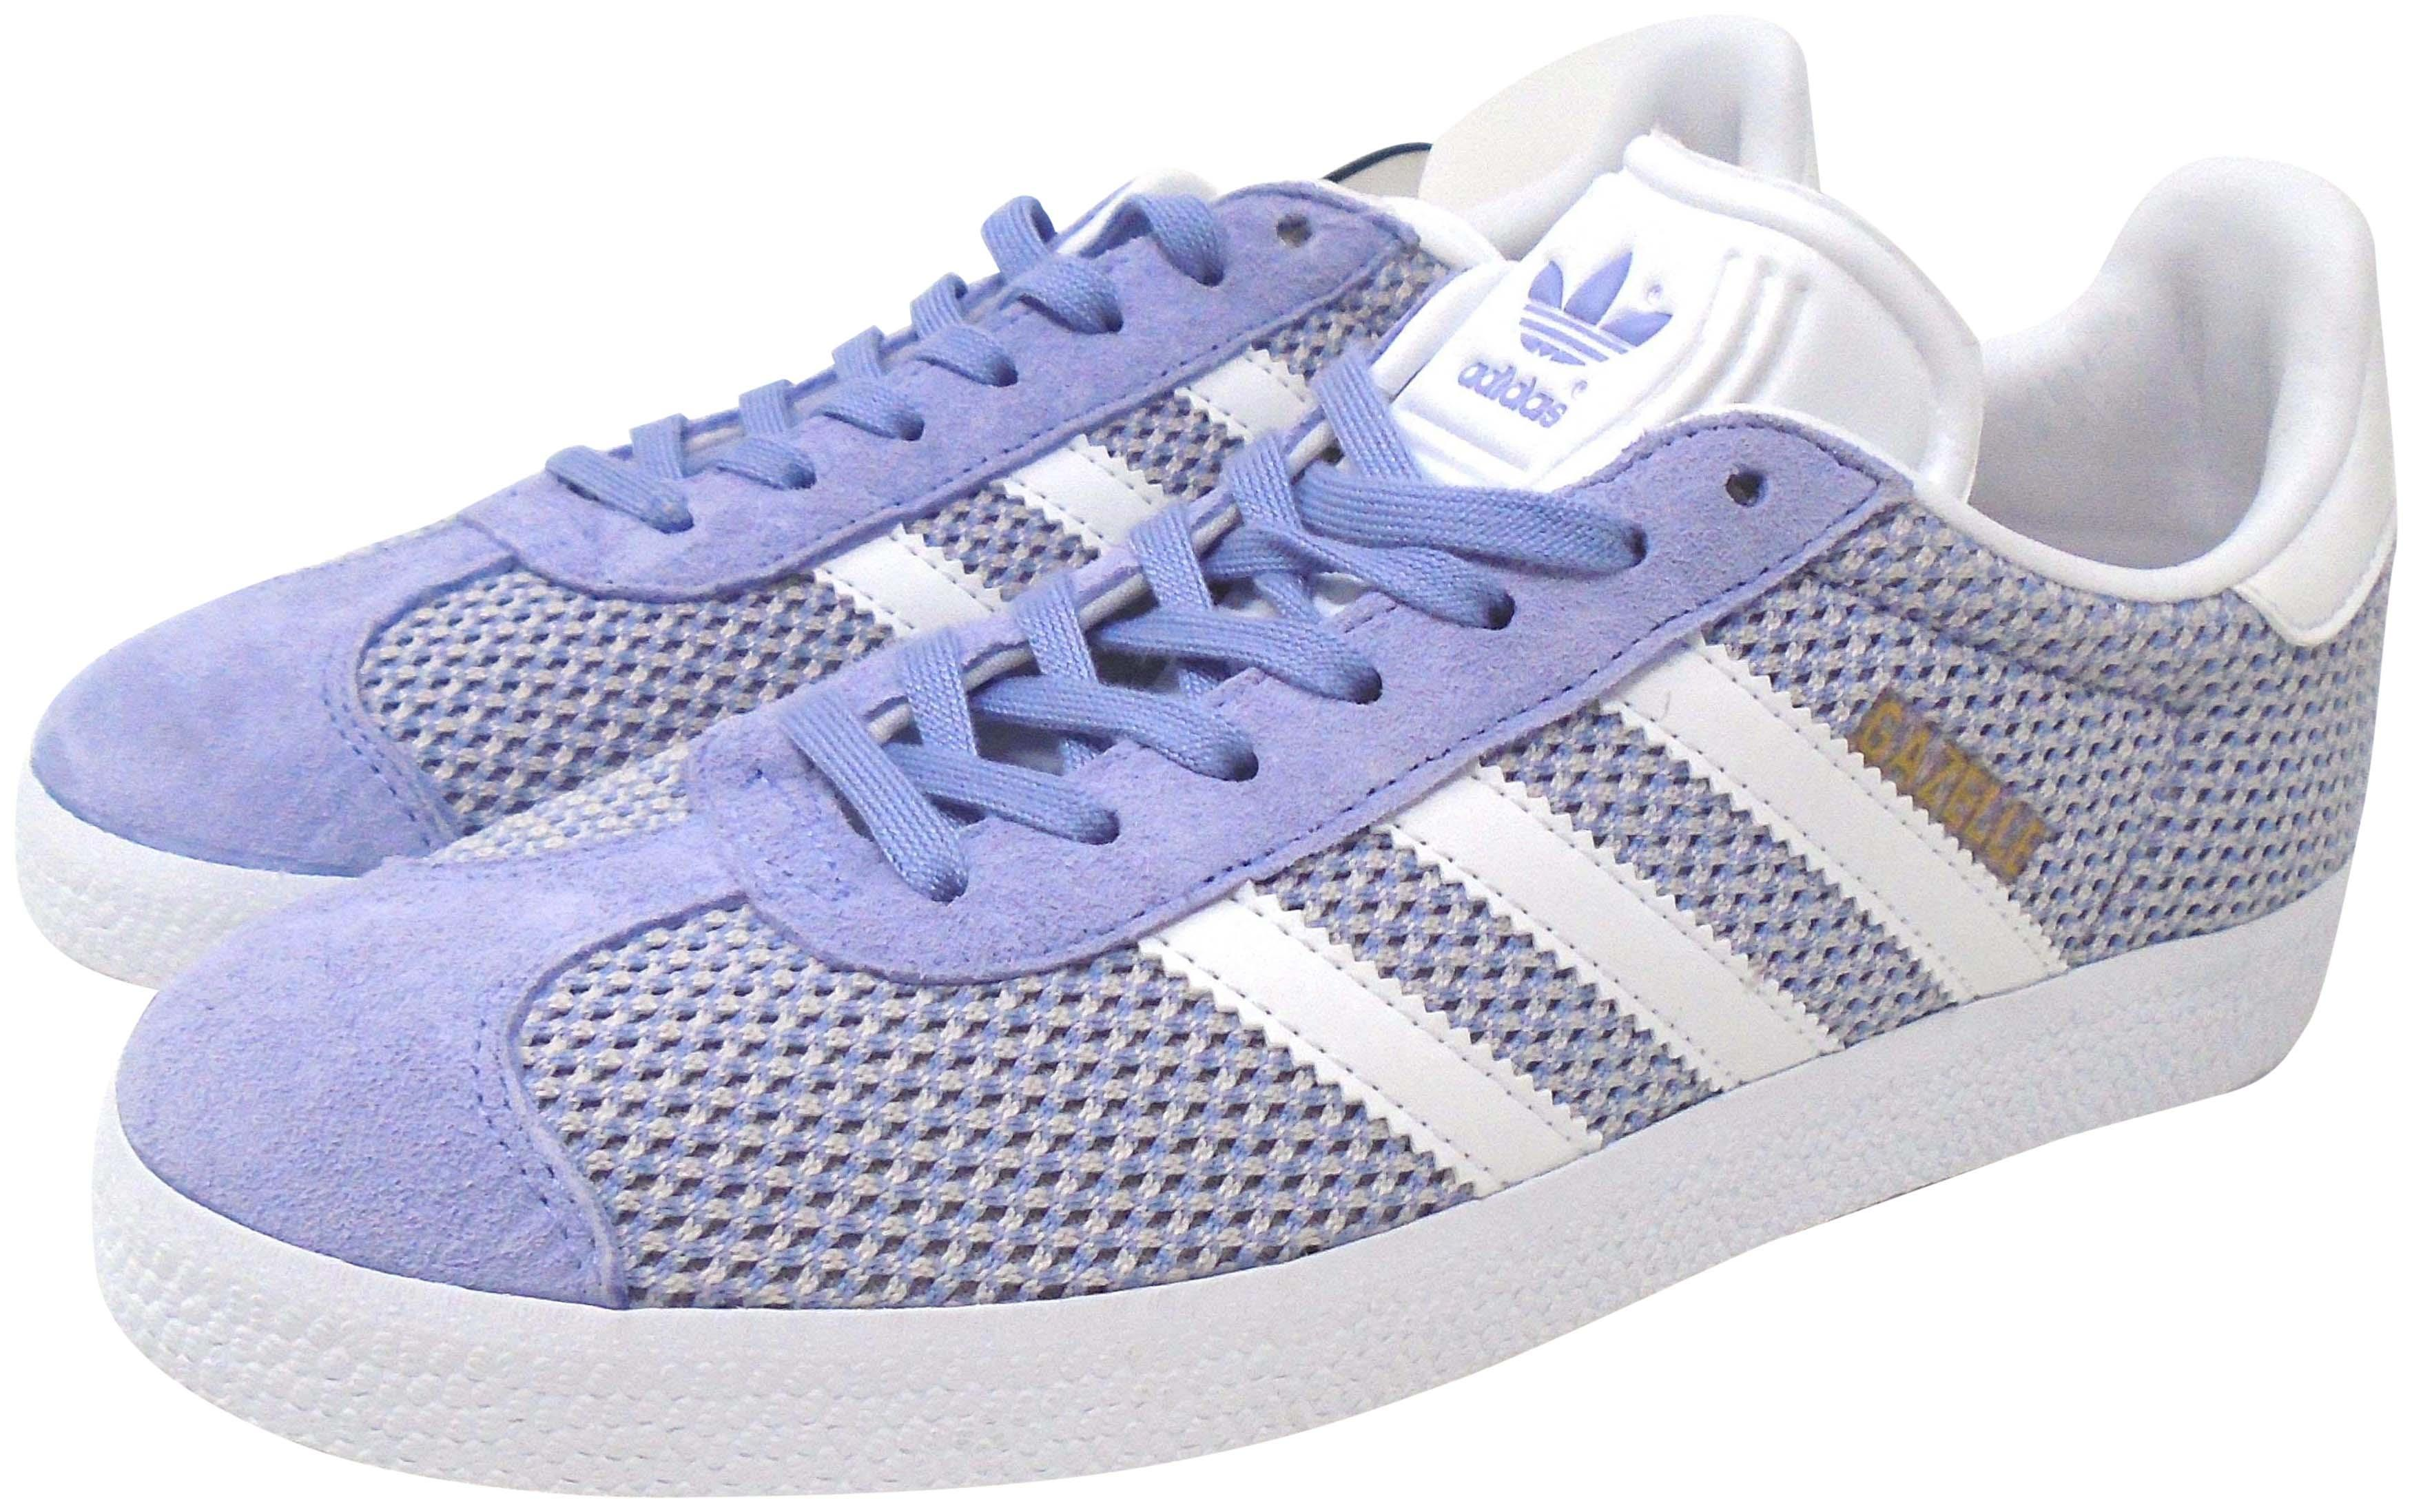 "adidas Violet Gazelle ""Heather"" Sneakers 7 Size US 7 Sneakers Regular (M, B) 49a439"